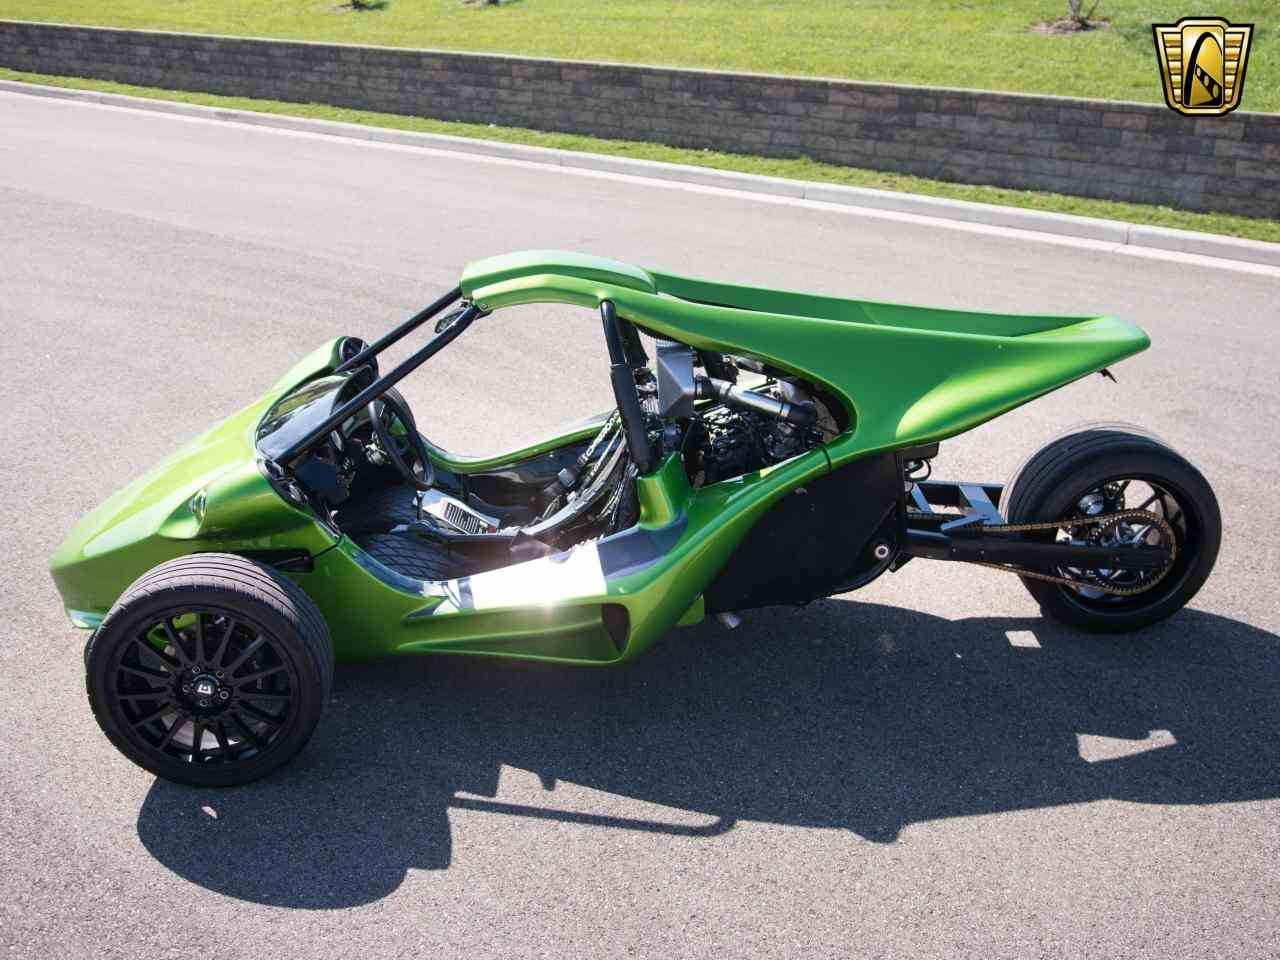 Large Picture of '08 Kawasaki T-Rex Replica located in Kenosha Wisconsin Offered by Gateway Classic Cars - Milwaukee - L7NA